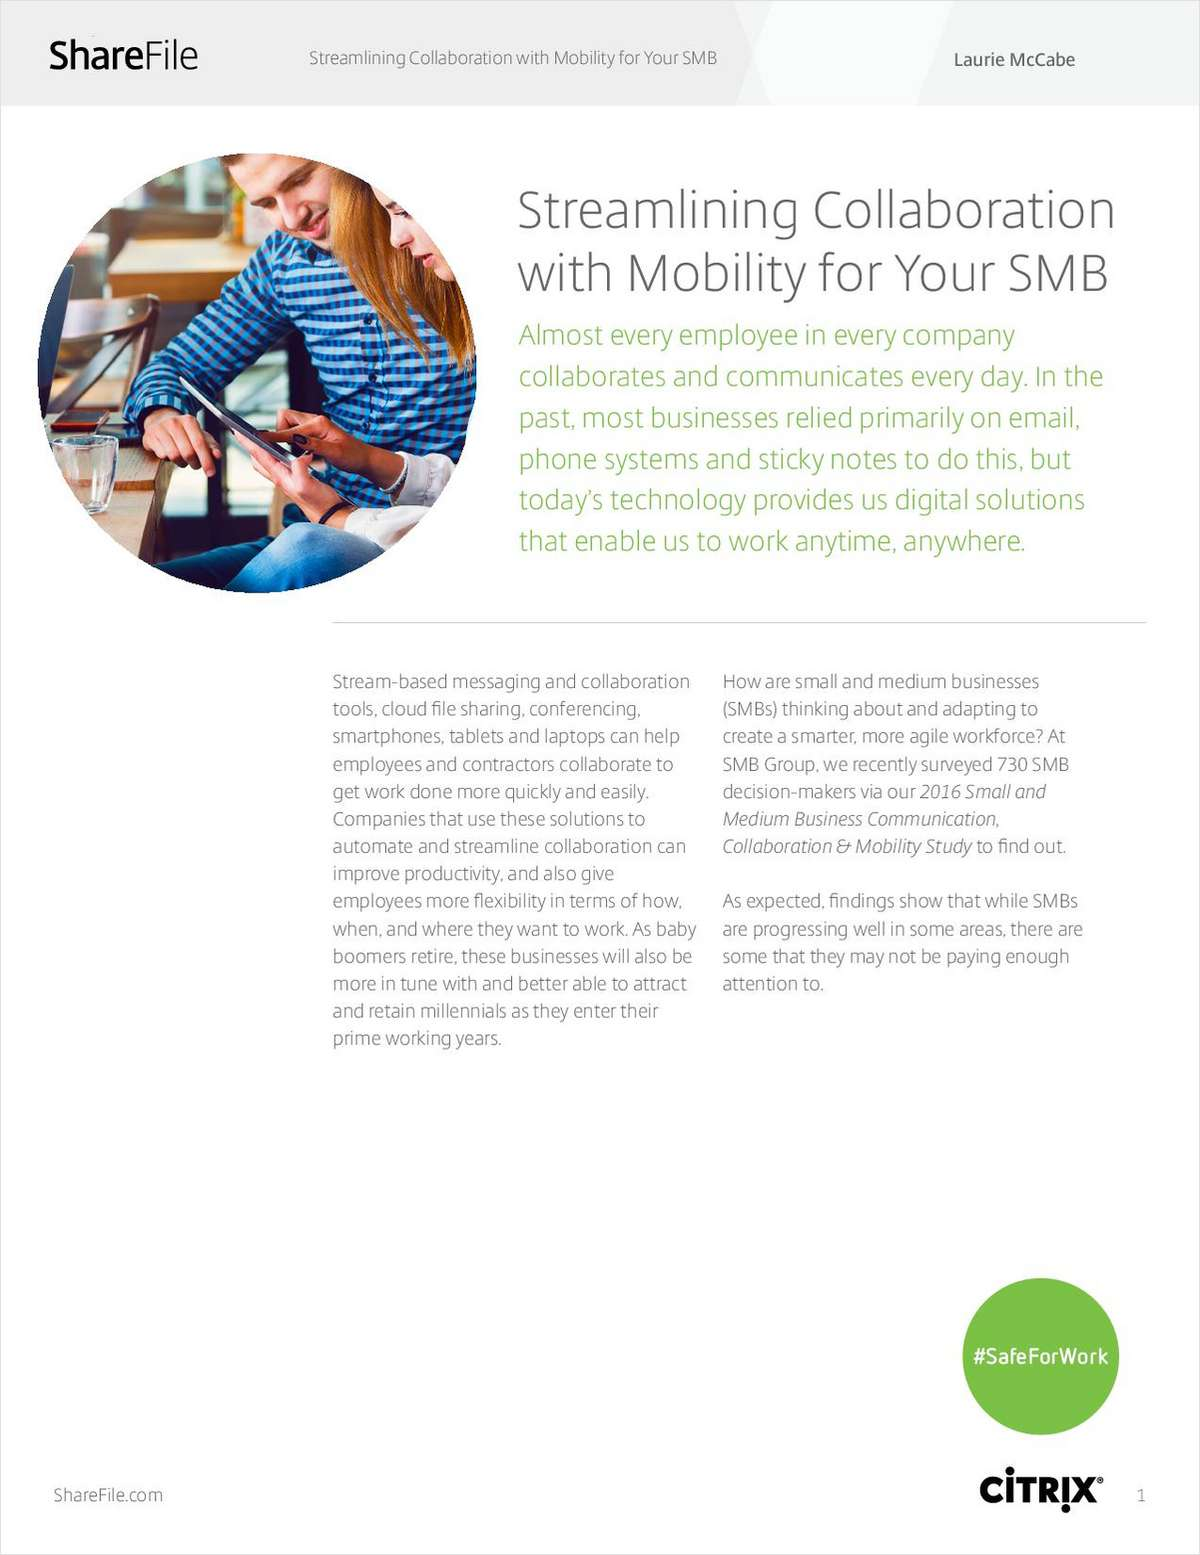 Trends in SMB Collaboration, Communication, and Mobility: What's Your Strategy?